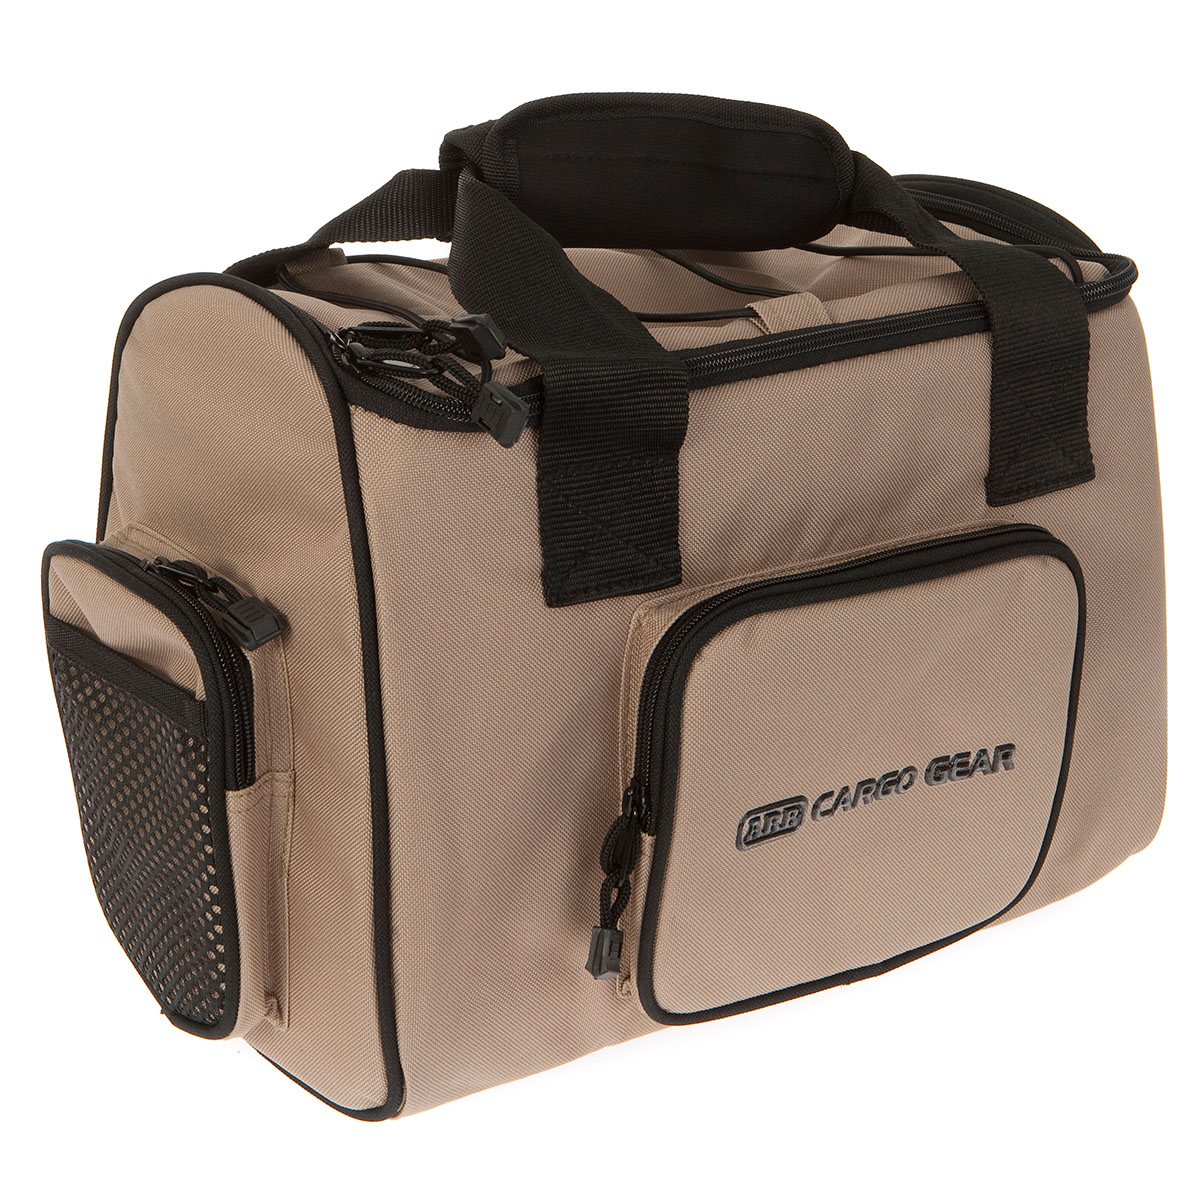 Arb Cooler Bag Life Style Store